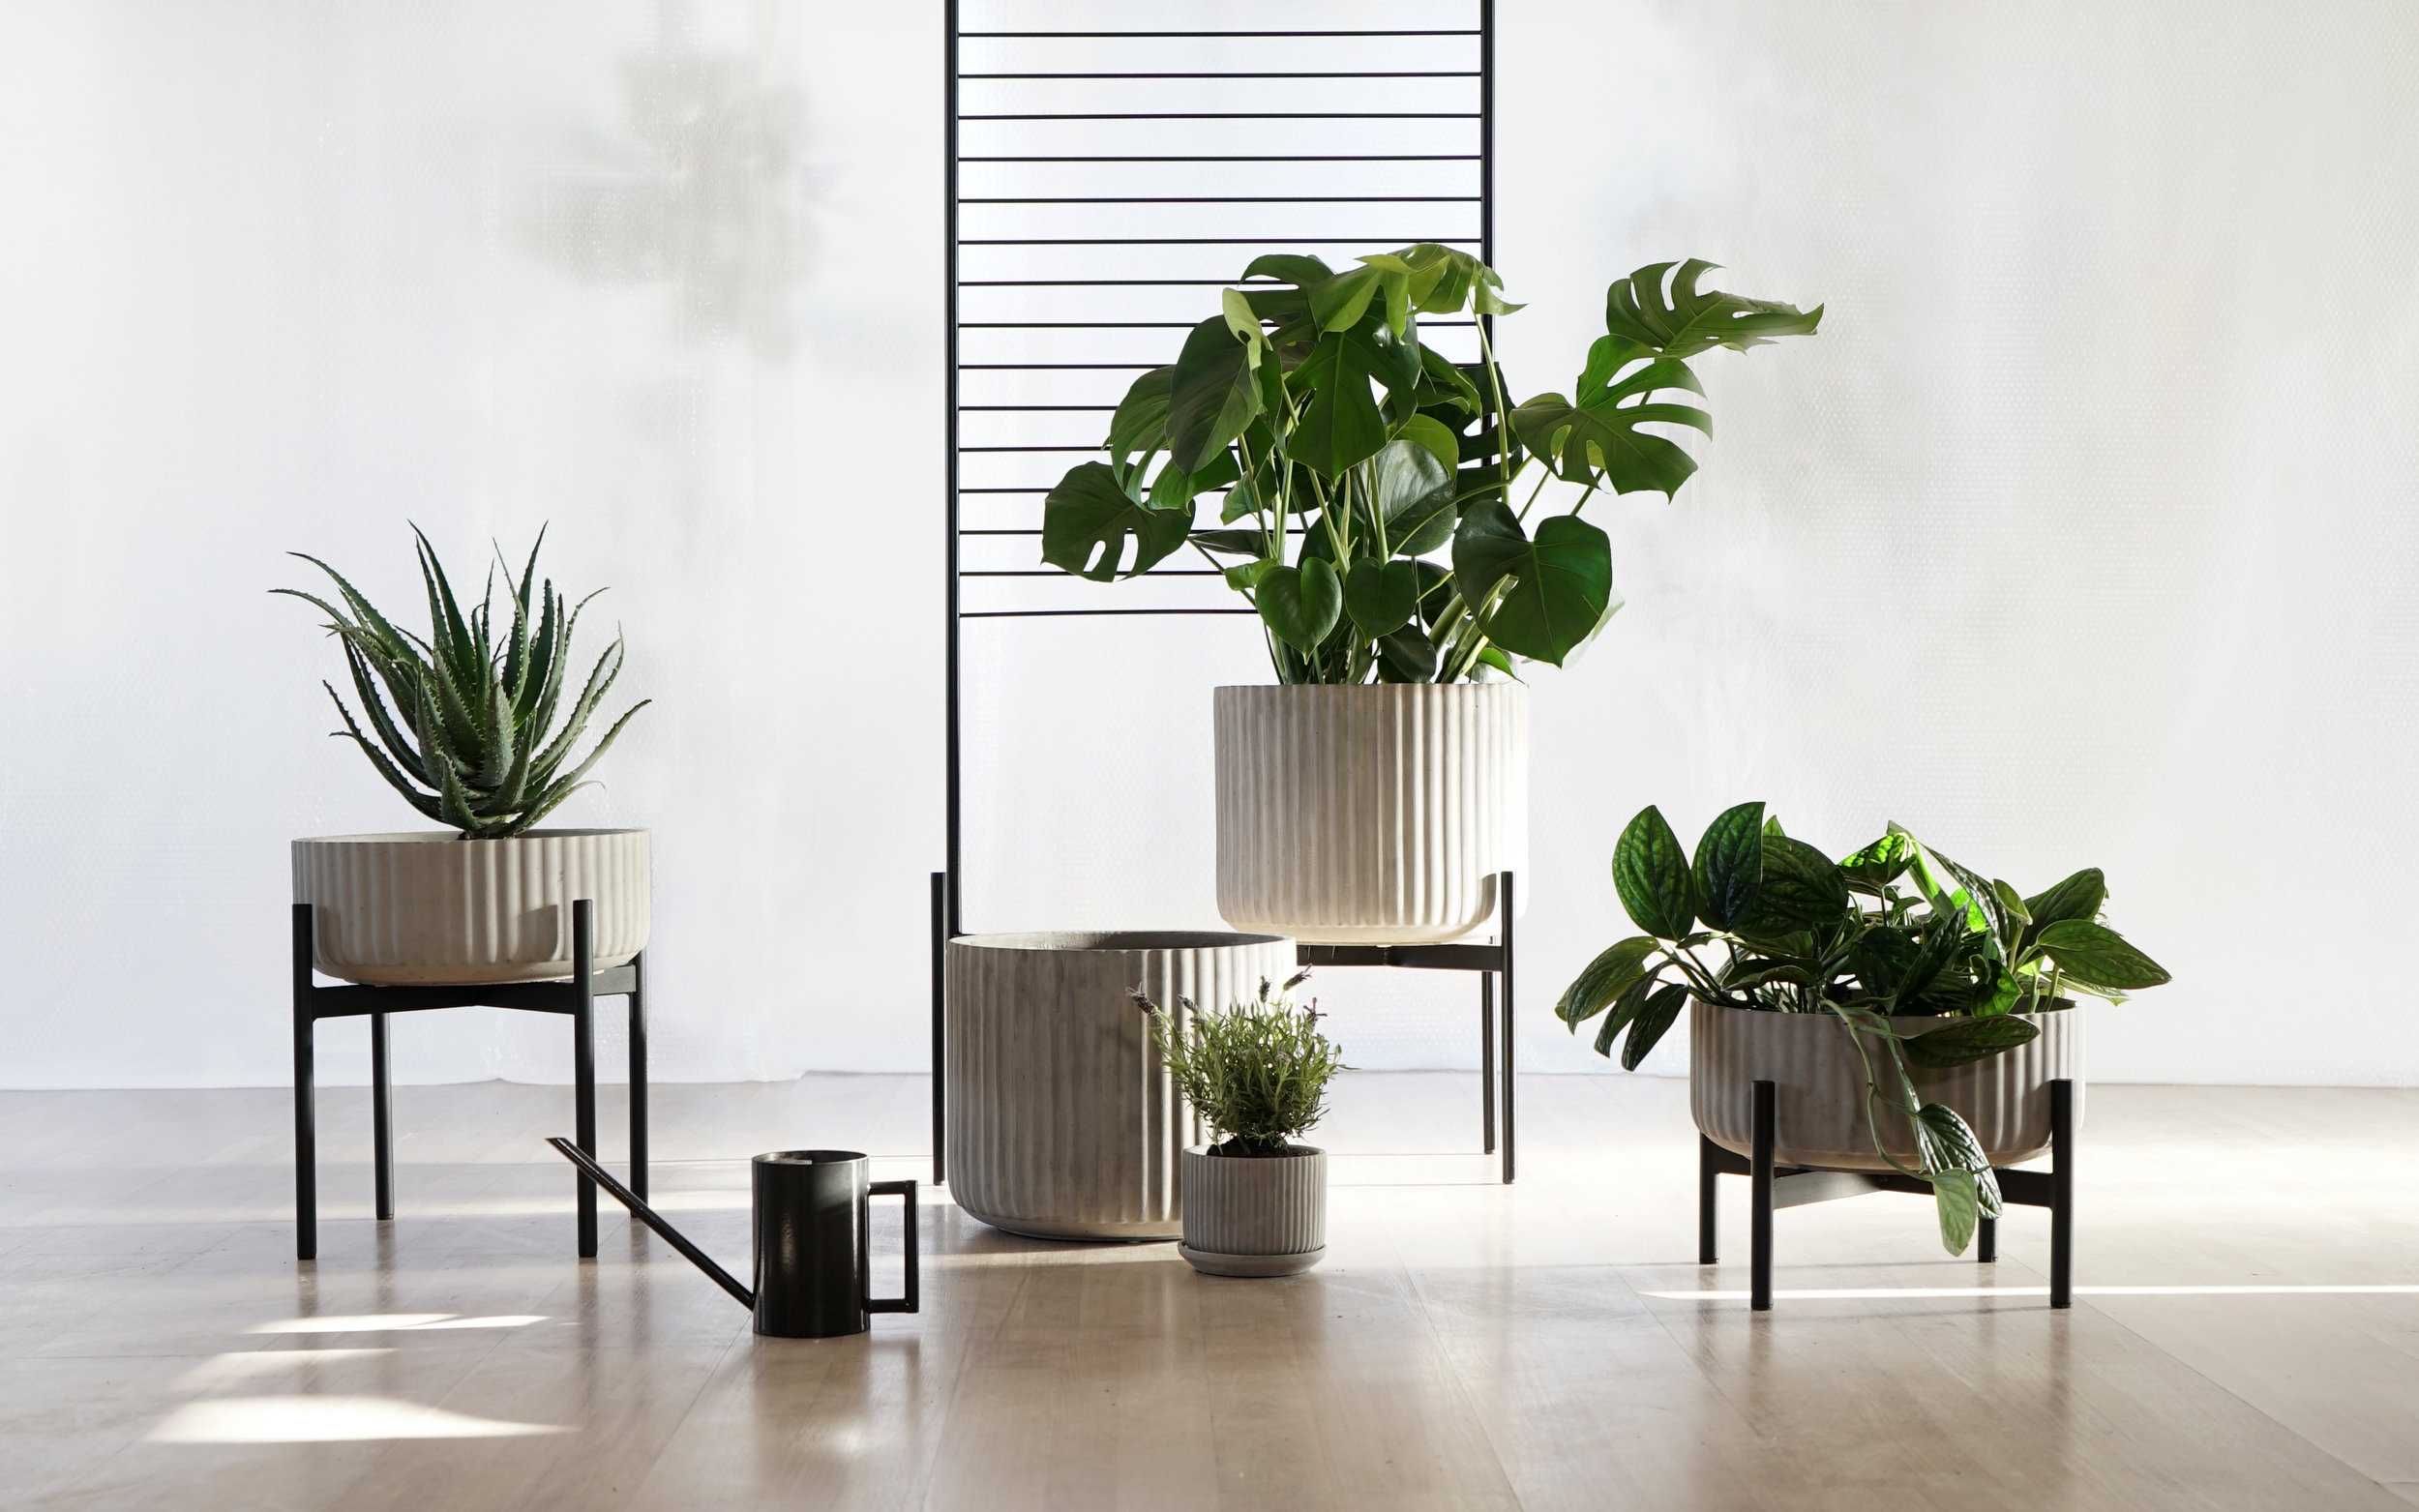 UT #67/256 Klorofyll Planter System by Anderssen & Voll   The Elementa UT project, introduced in 2018 is an ongoing inquiry into the question of how we can use design and art to enter into a more sensible and meaningful conversation with nature. The Klorofyll Planter System by Andersen & Voll is a comprehensive series of planters of different sizes and materials , developed to explore interior landscaping.